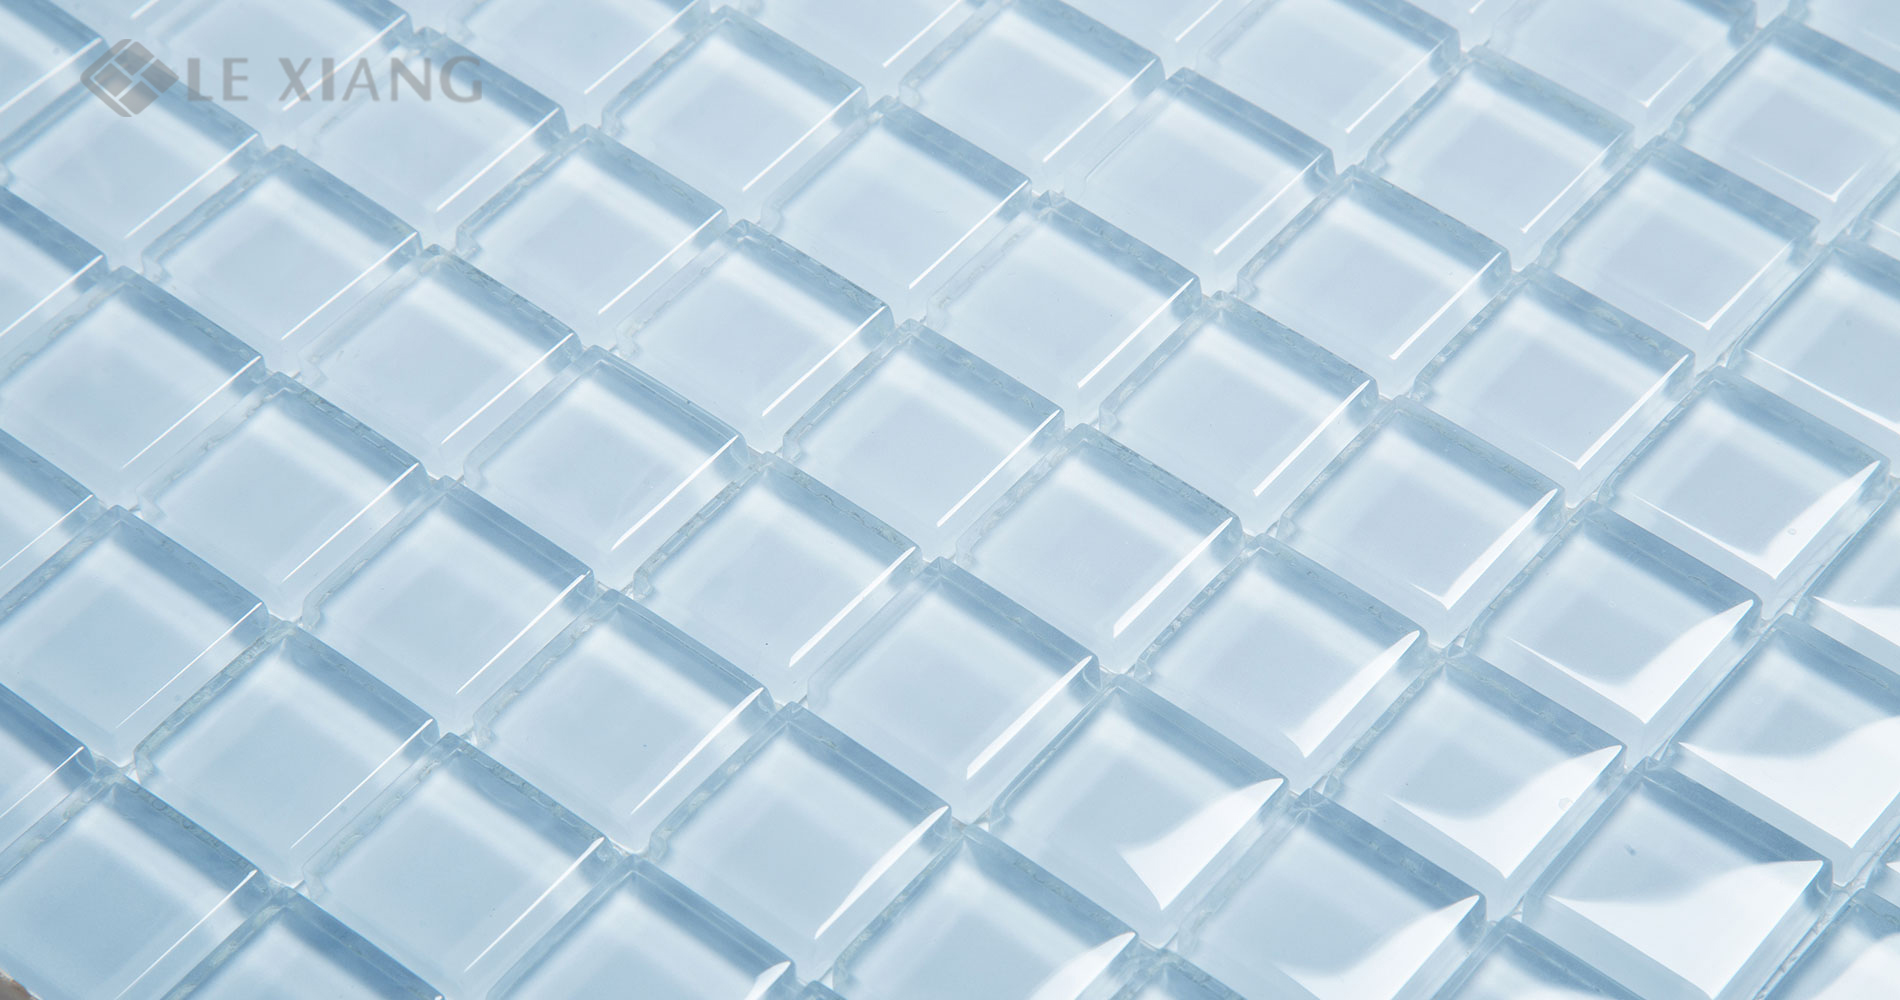 25mm-Square-Crystal-Glass-Blue-Mosaic-Tile-Backsplash-19